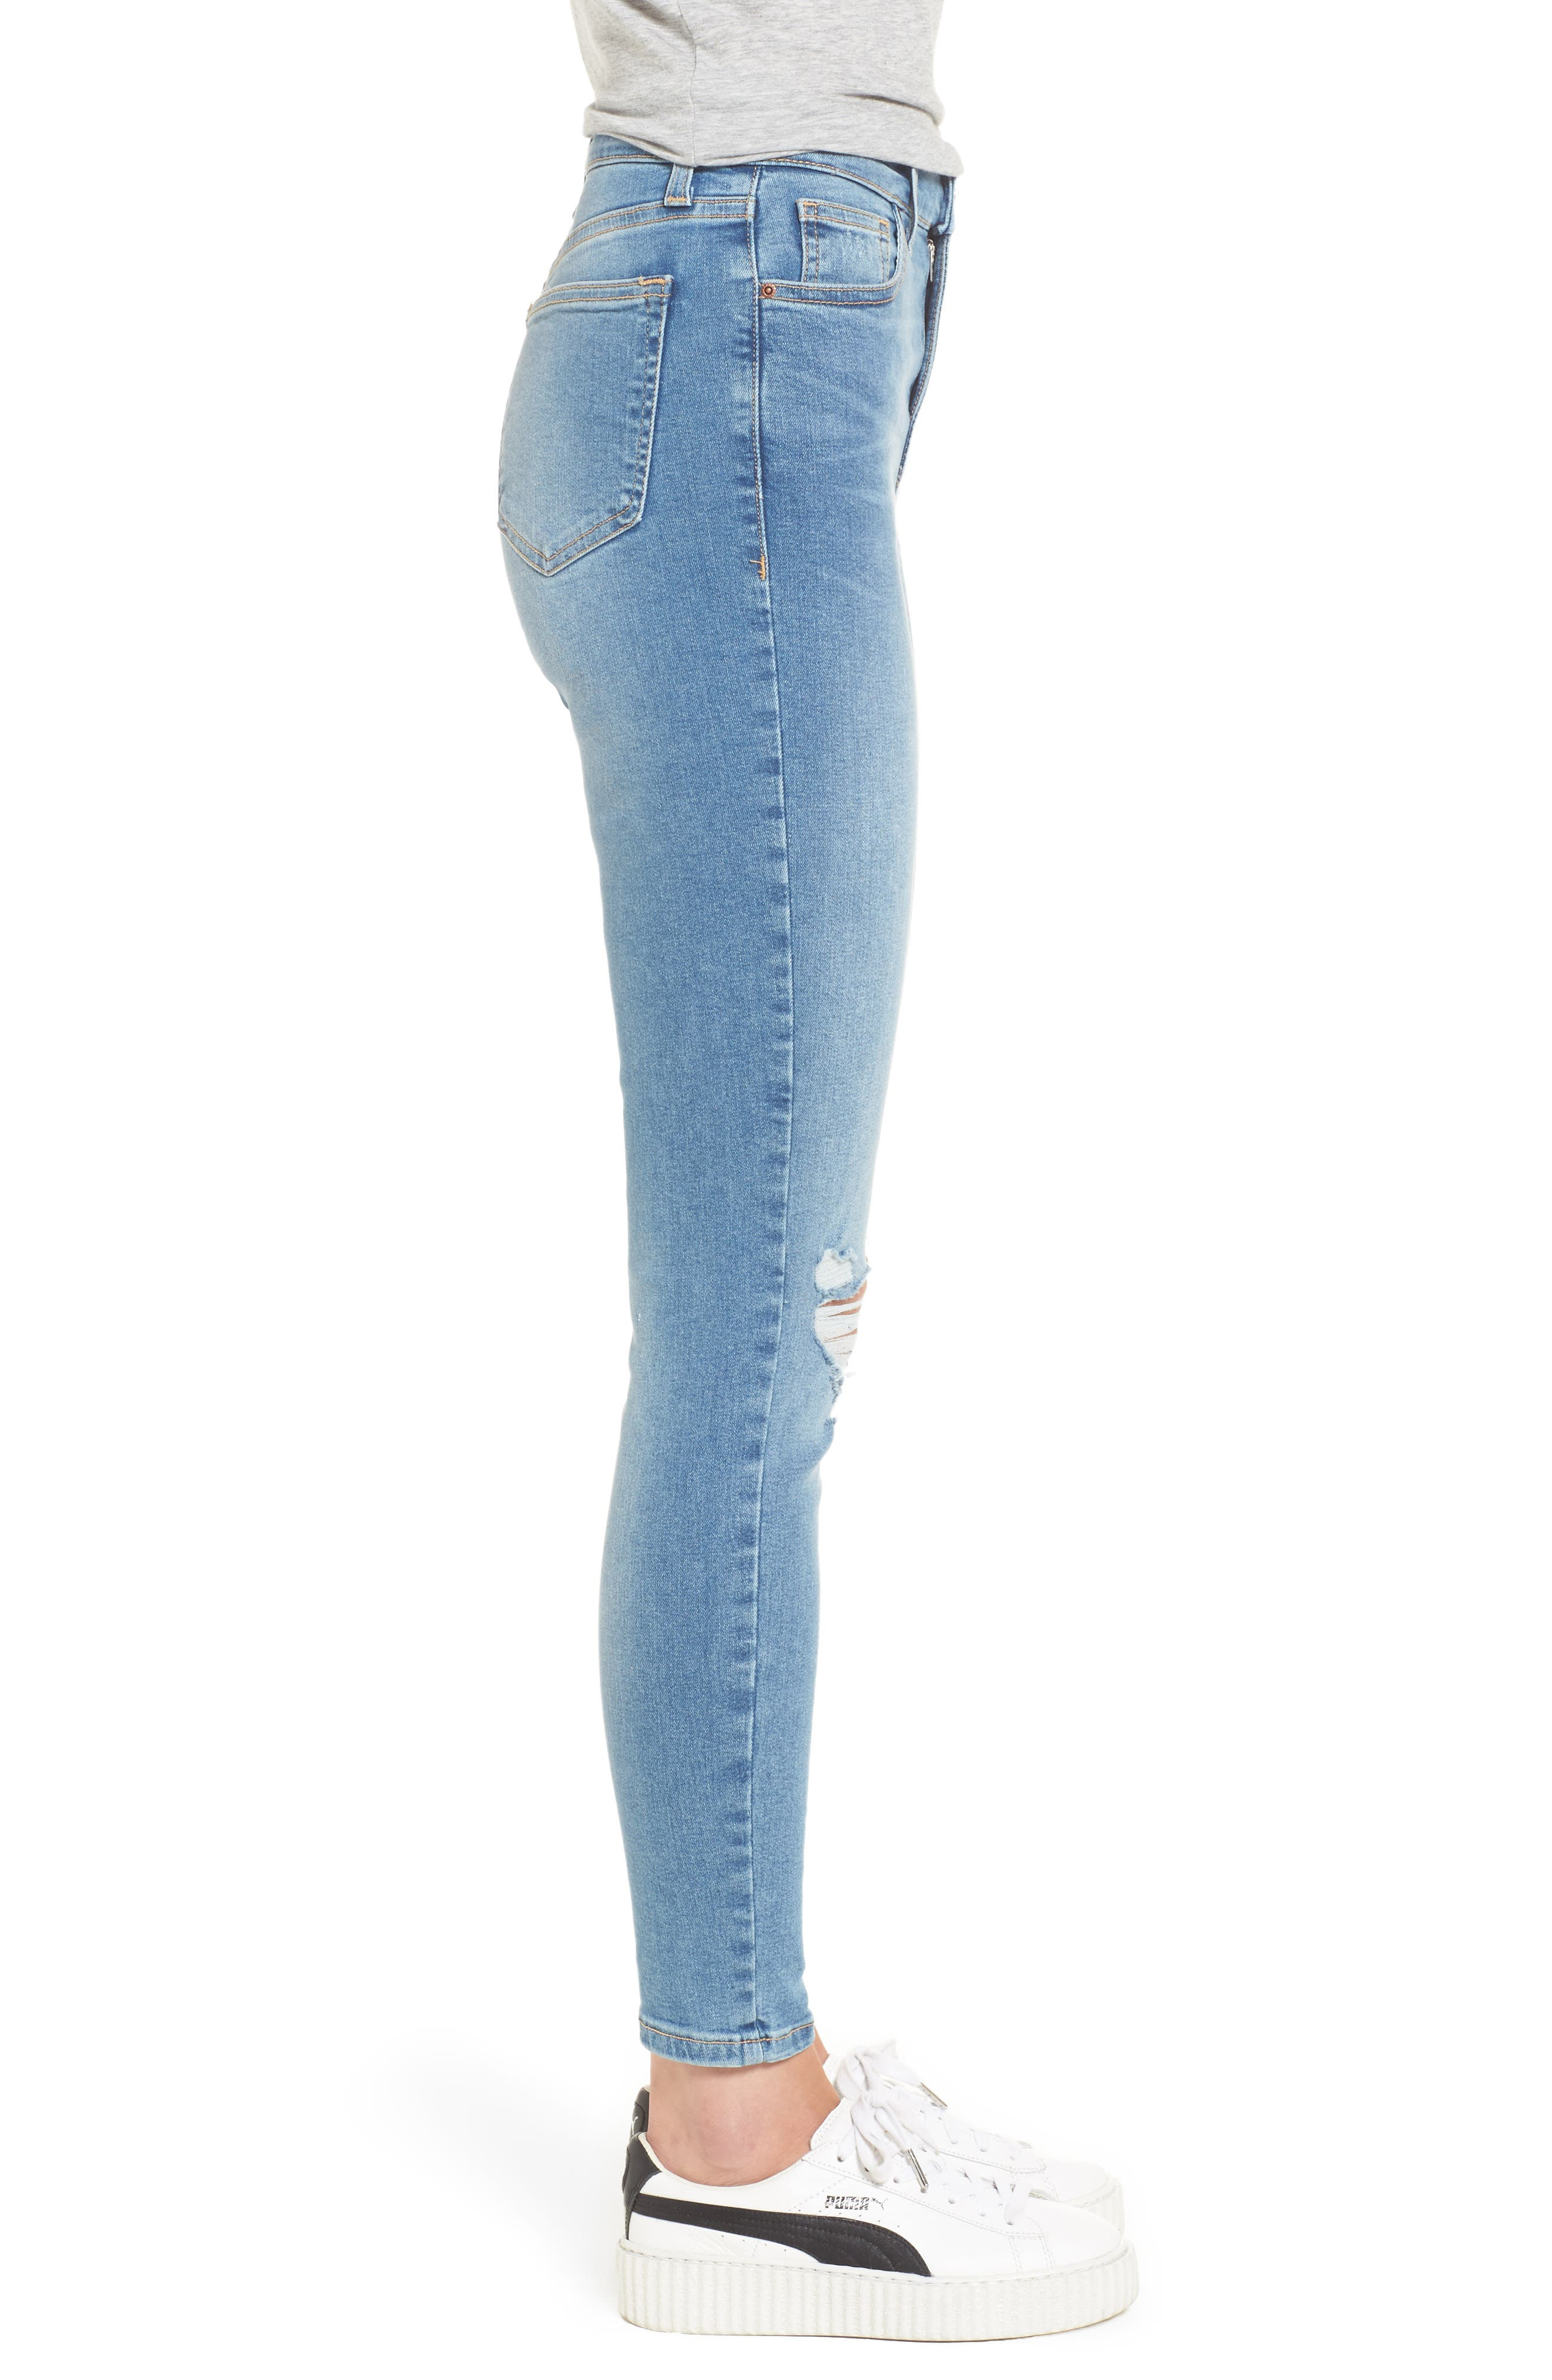 Moto Jamie Ripped High Waist Ankle Skinny Jeans,                             Alternate thumbnail 3, color,                             400